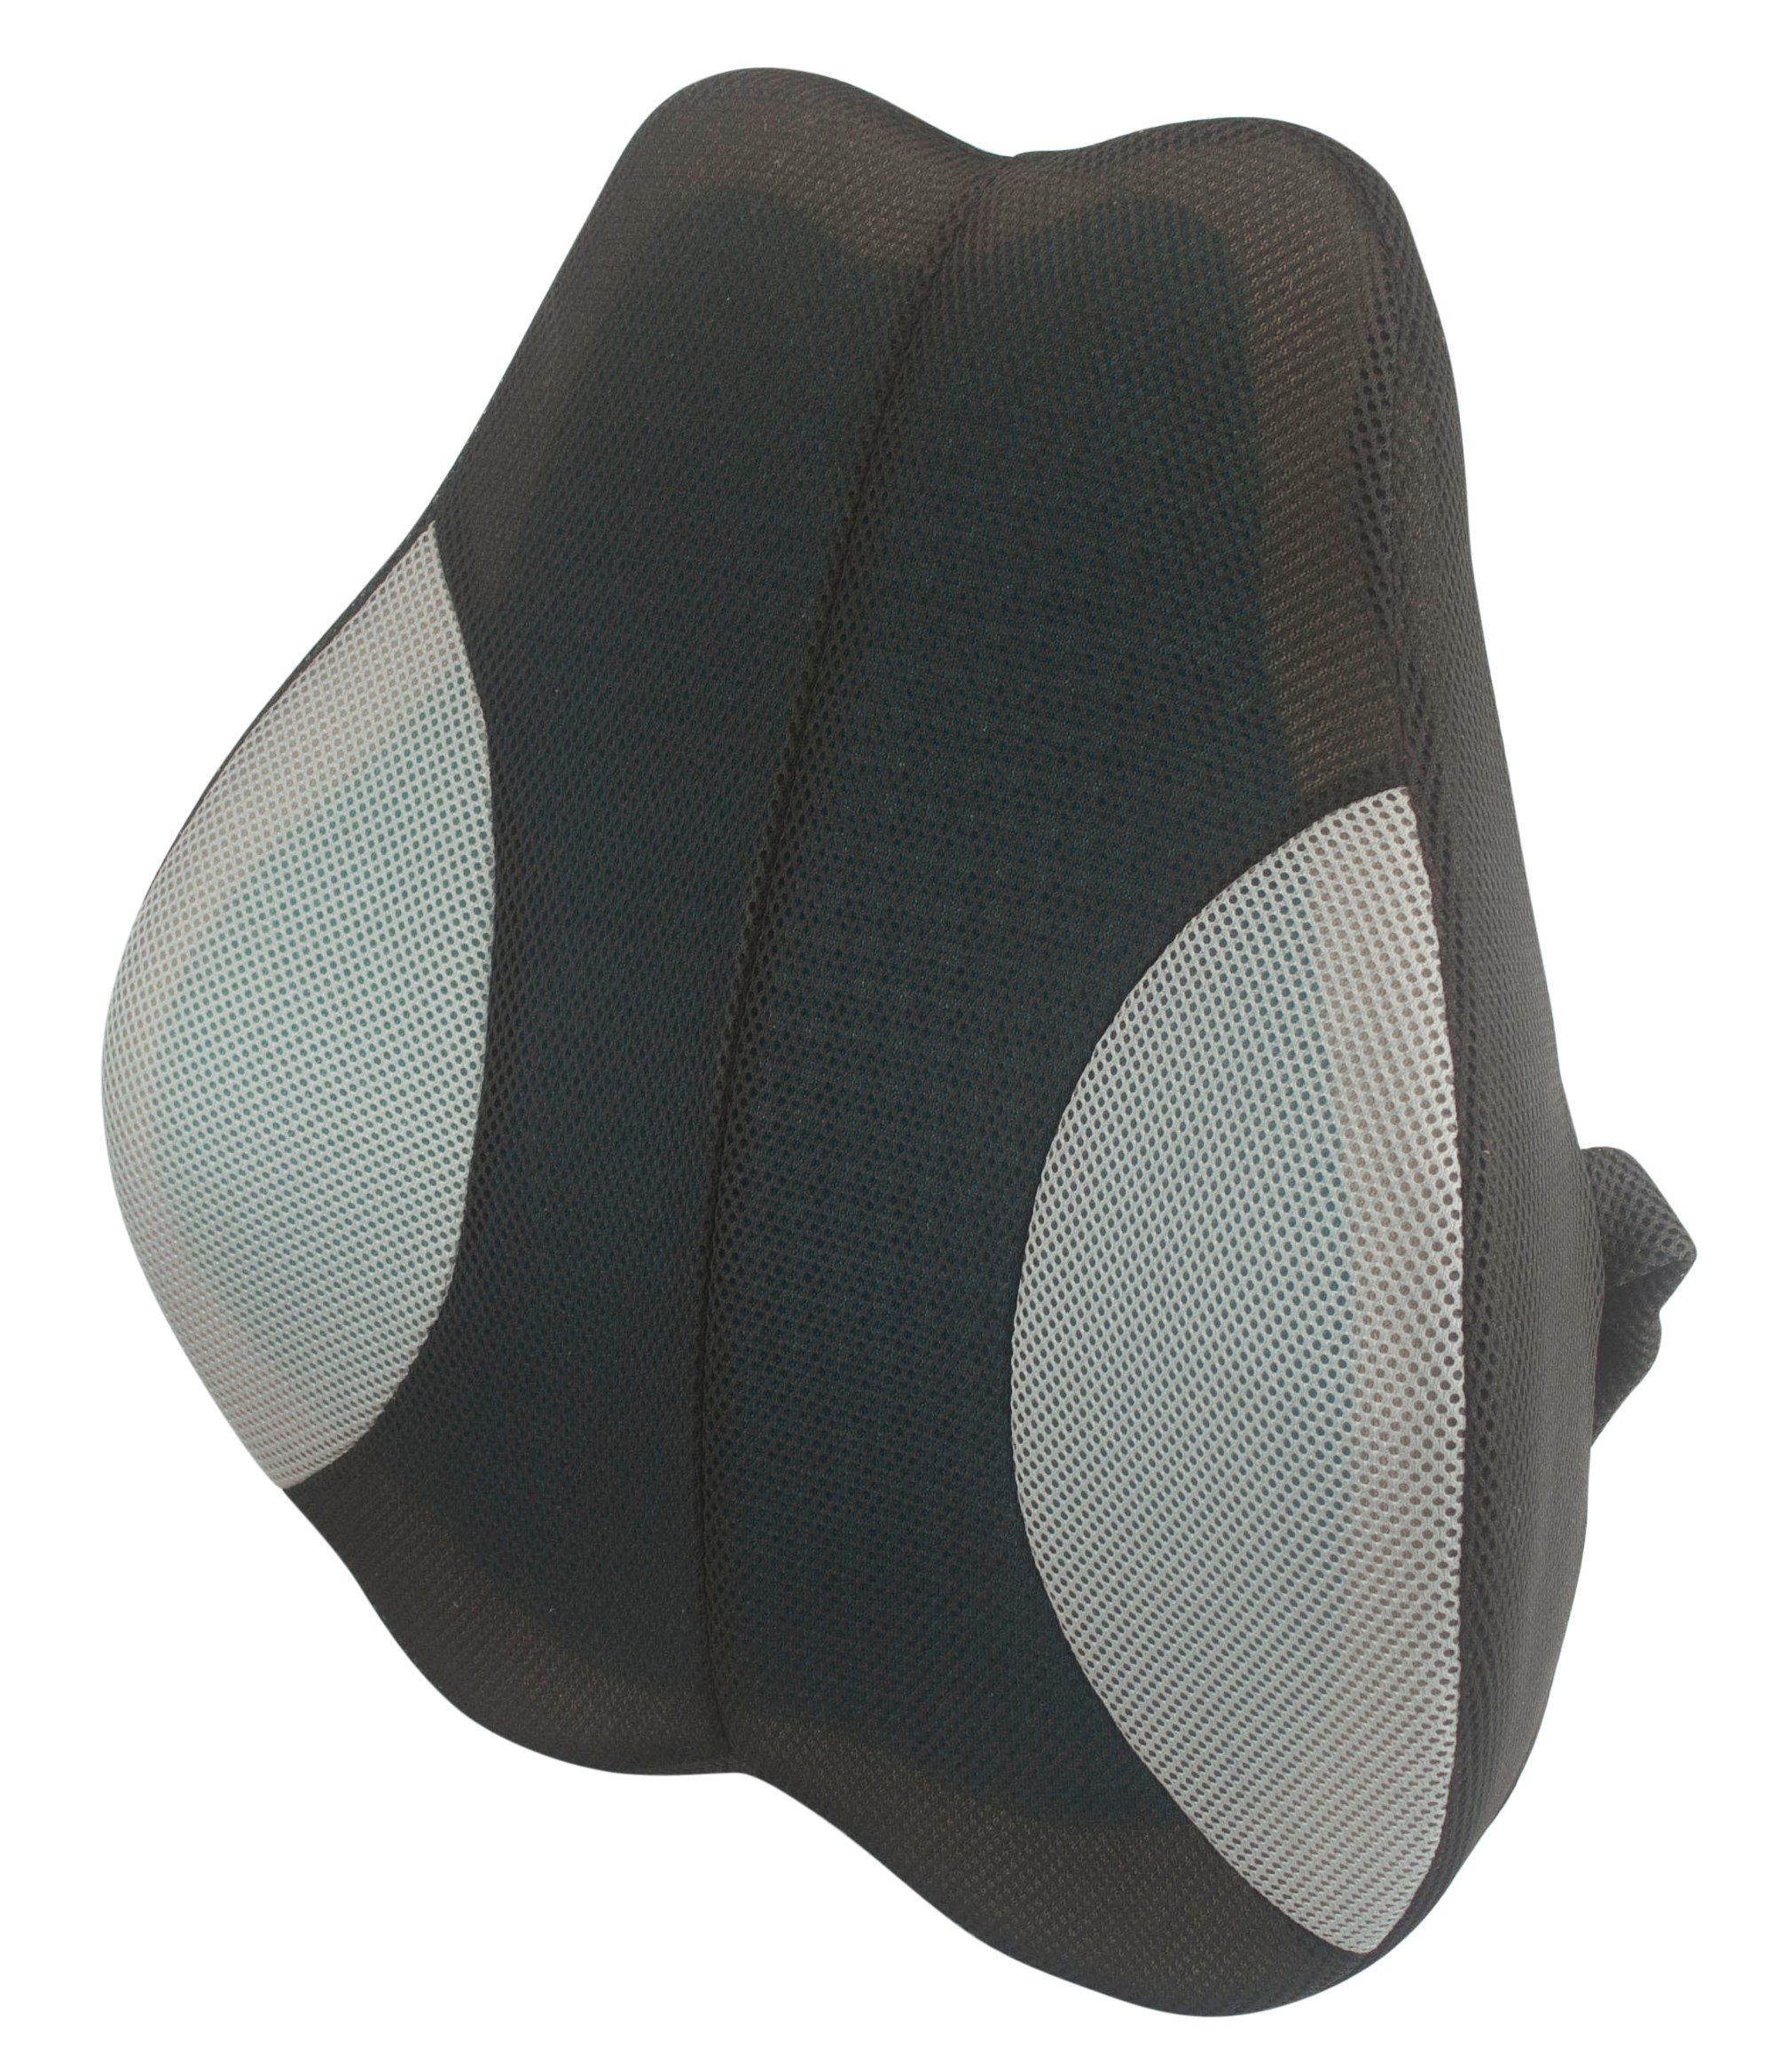 Lumbar Support for Office Chairs and Cars - Cooling Gel with Memory Foam for Comfort and Support